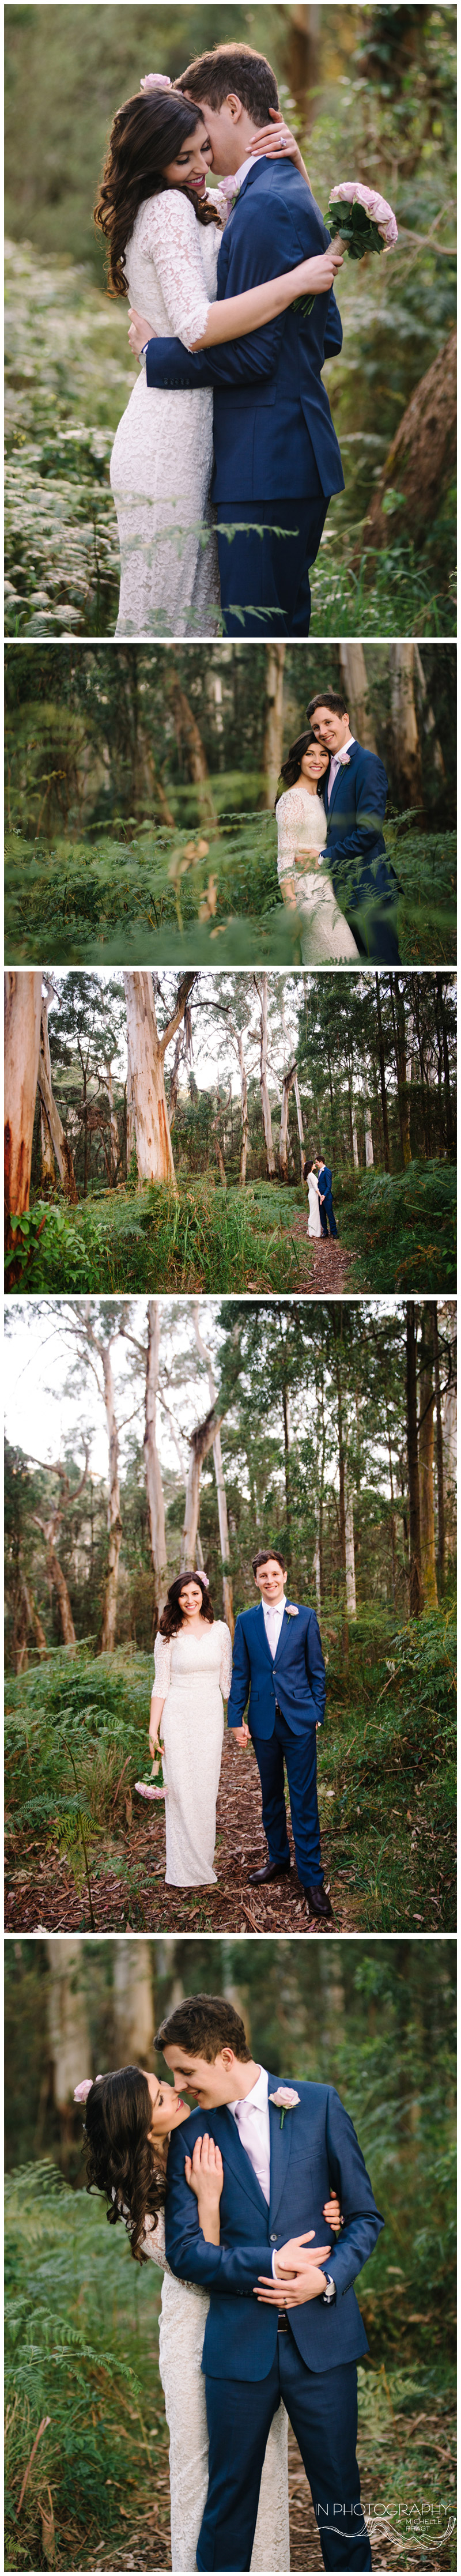 Red Hill wedding